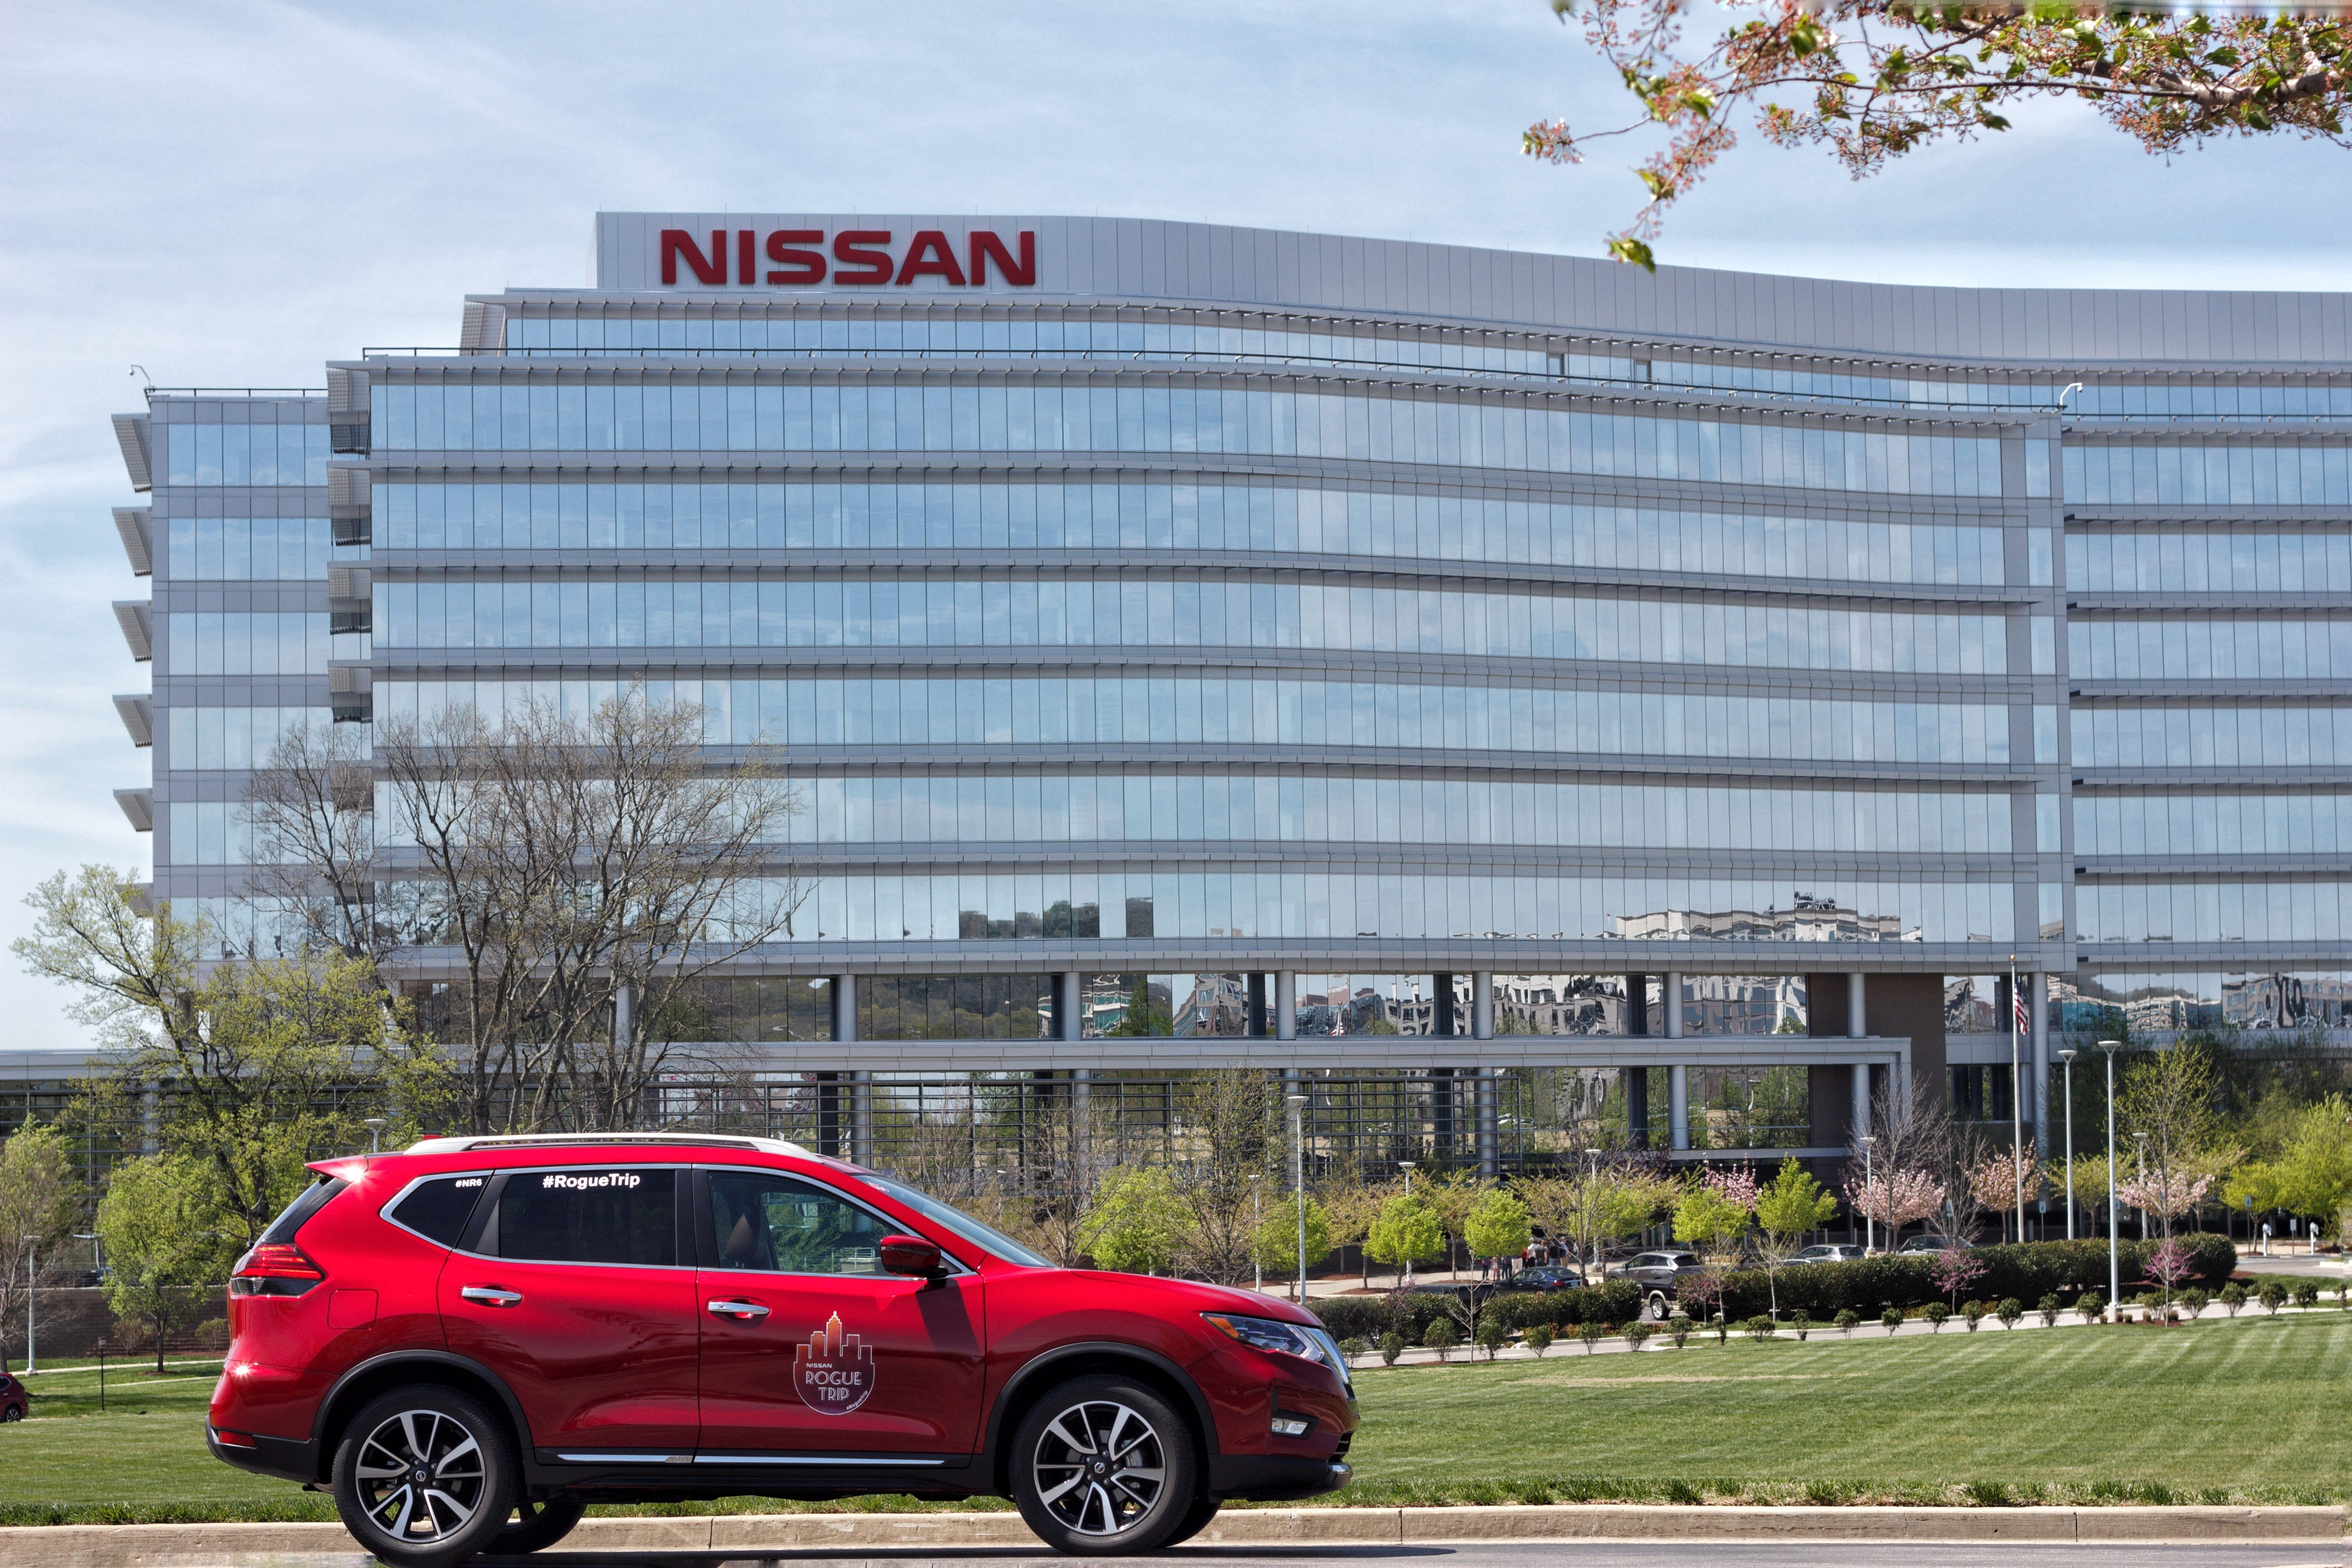 Nissan Rogue Trip: Driving For Charity and Helping Others